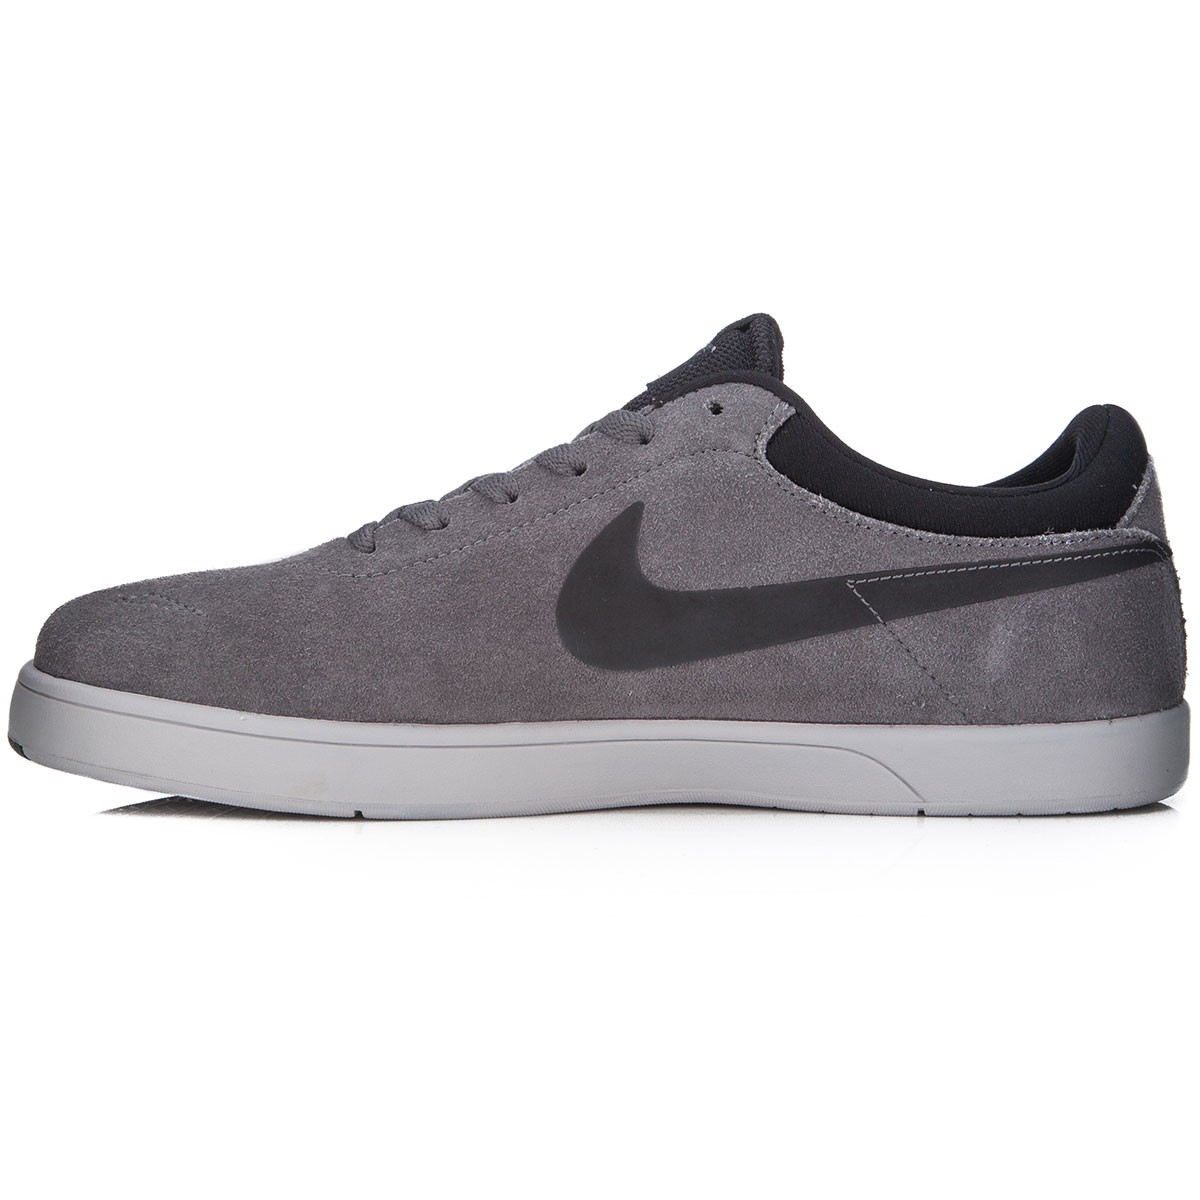 Nike SB Zoom Eric Koston Shoes - Dark Grey Wolf Grey Black - 10.0 7f4b20cb5